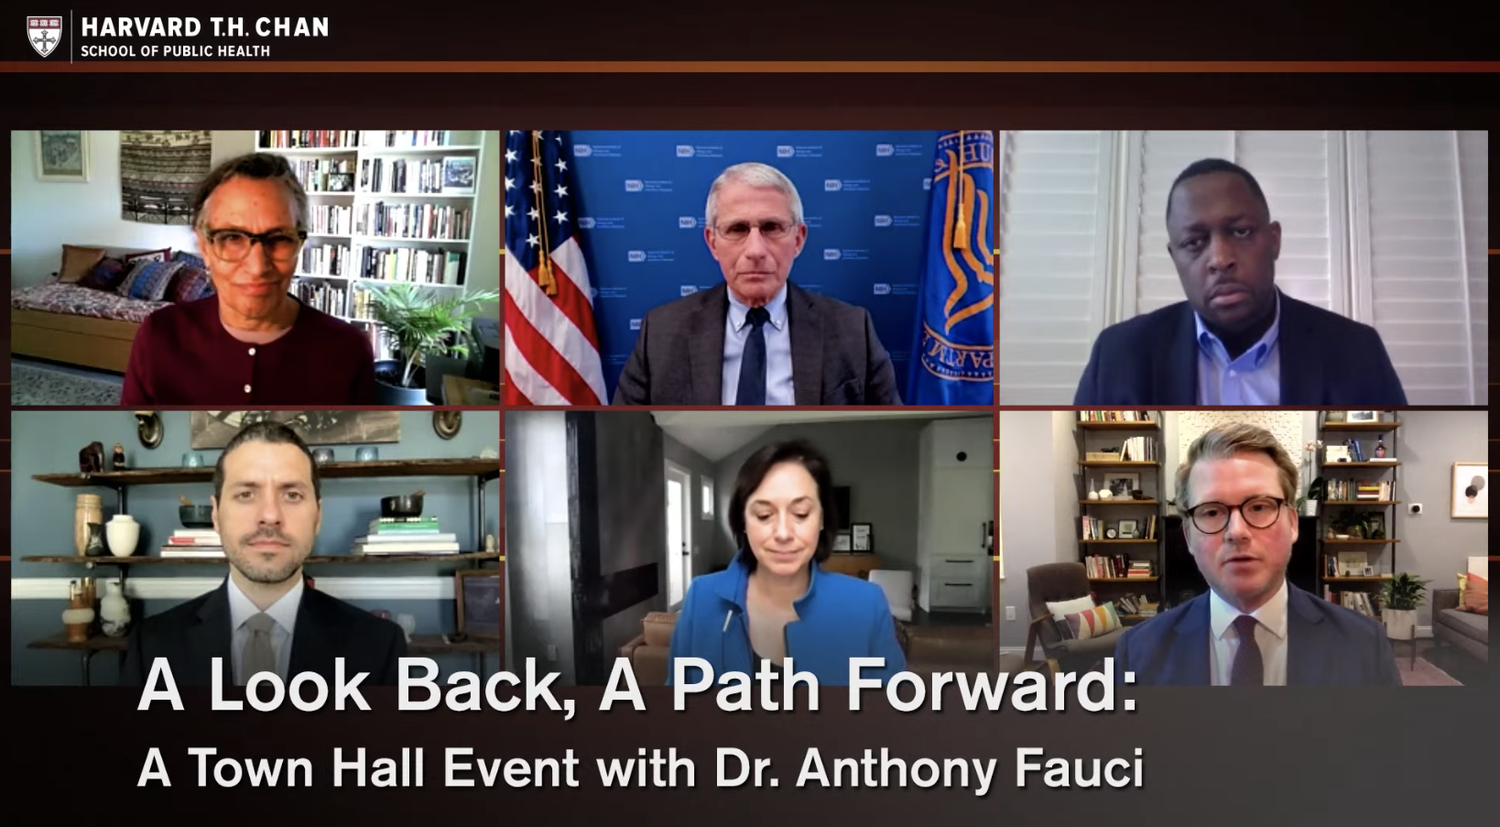 U.S. Chief Medical Advisor Anthony S. Fauci discussed the current state of the nation's response to Covid-19 during a virtual town hall event with the Harvard School of Public Health.